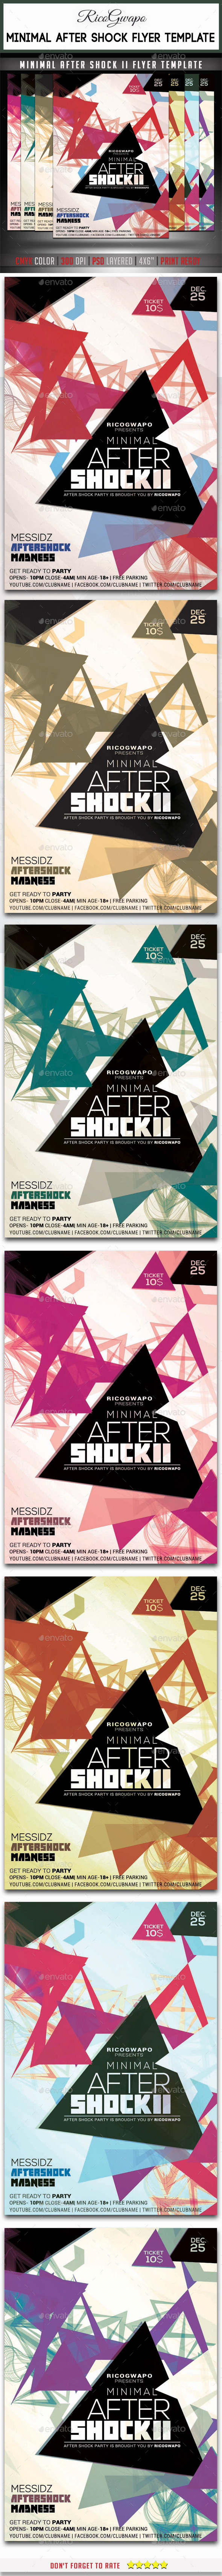 Minimal After Shock II Flyer Template - Events Flyers